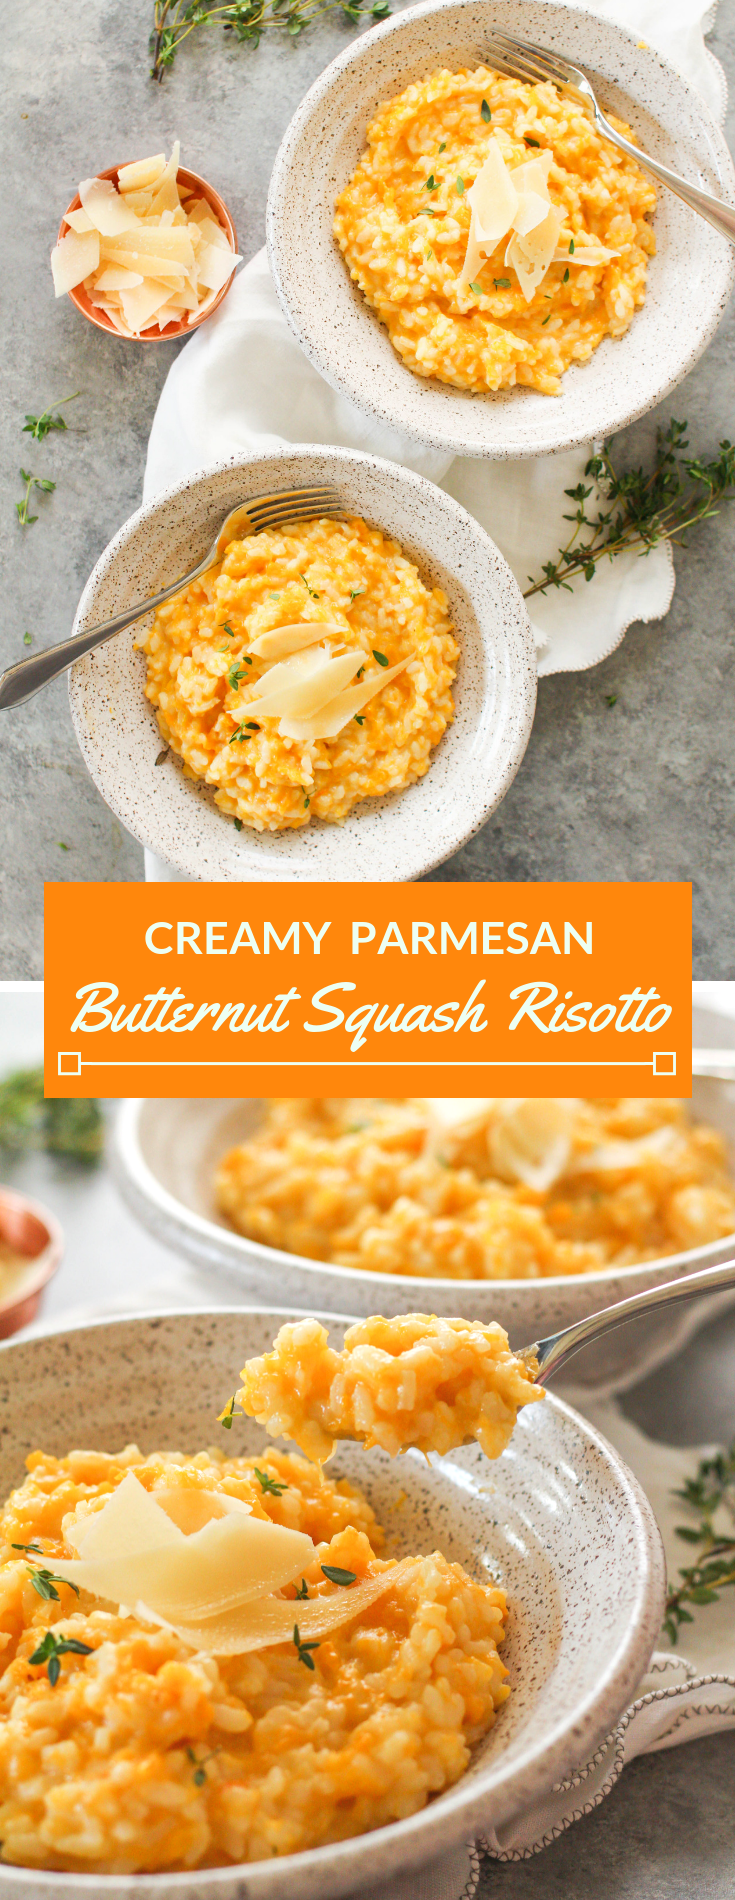 Savory roasted butternut squash, plenty of chicken broth and a splash of white wine is combined with Arborio rice to create this delicious roasted butternut squash risotto.